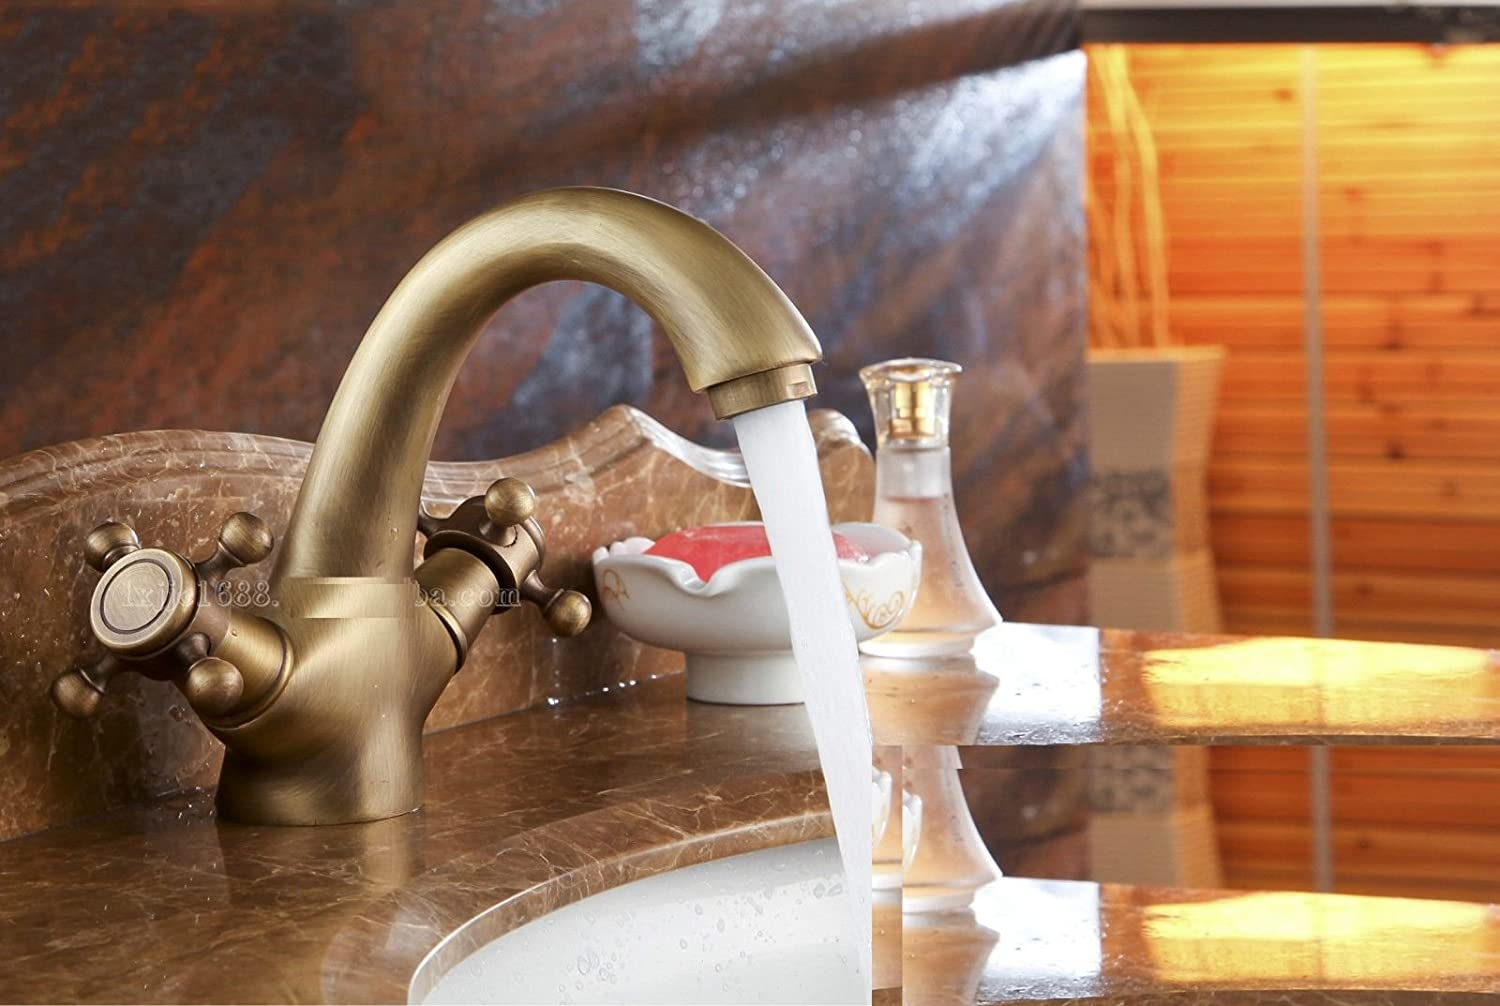 Lpophy Bathroom Sink Mixer Taps Faucet Bath Waterfall Cold and Hot Water Tap for Washroom Bathroom and Kitchen Antique Ceramic Copper Hot and Cold Mixer